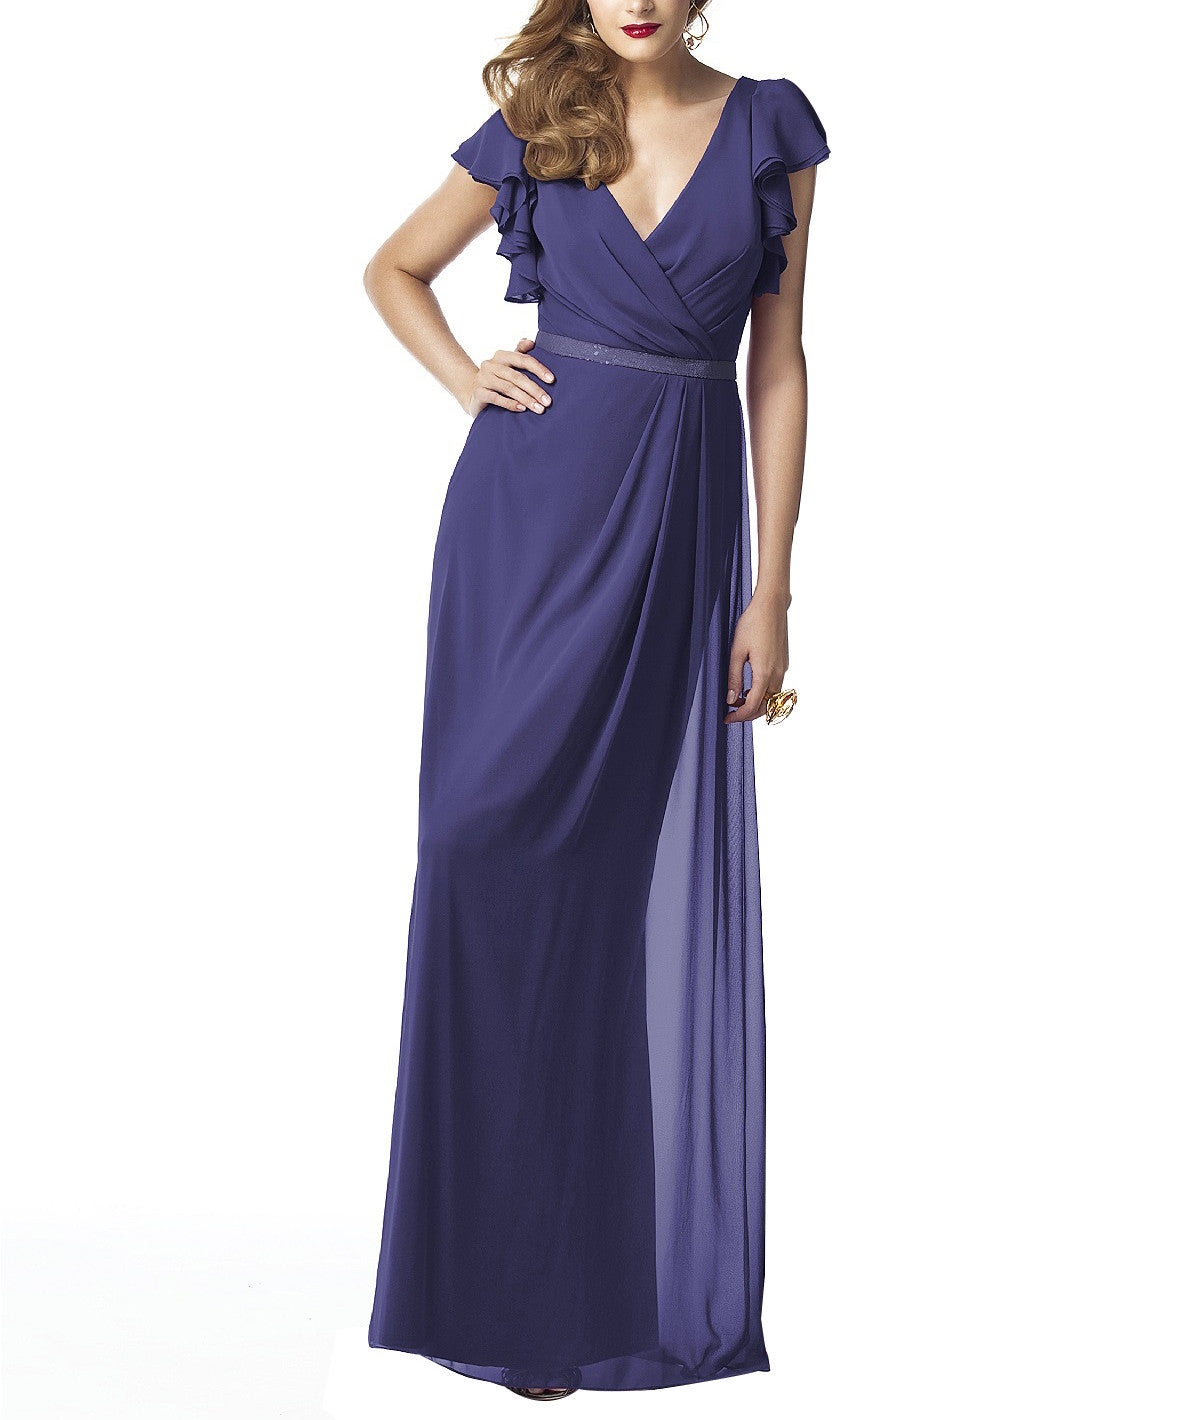 Dessy Collection Style 2874 Bridesmaid Dress | Brideside